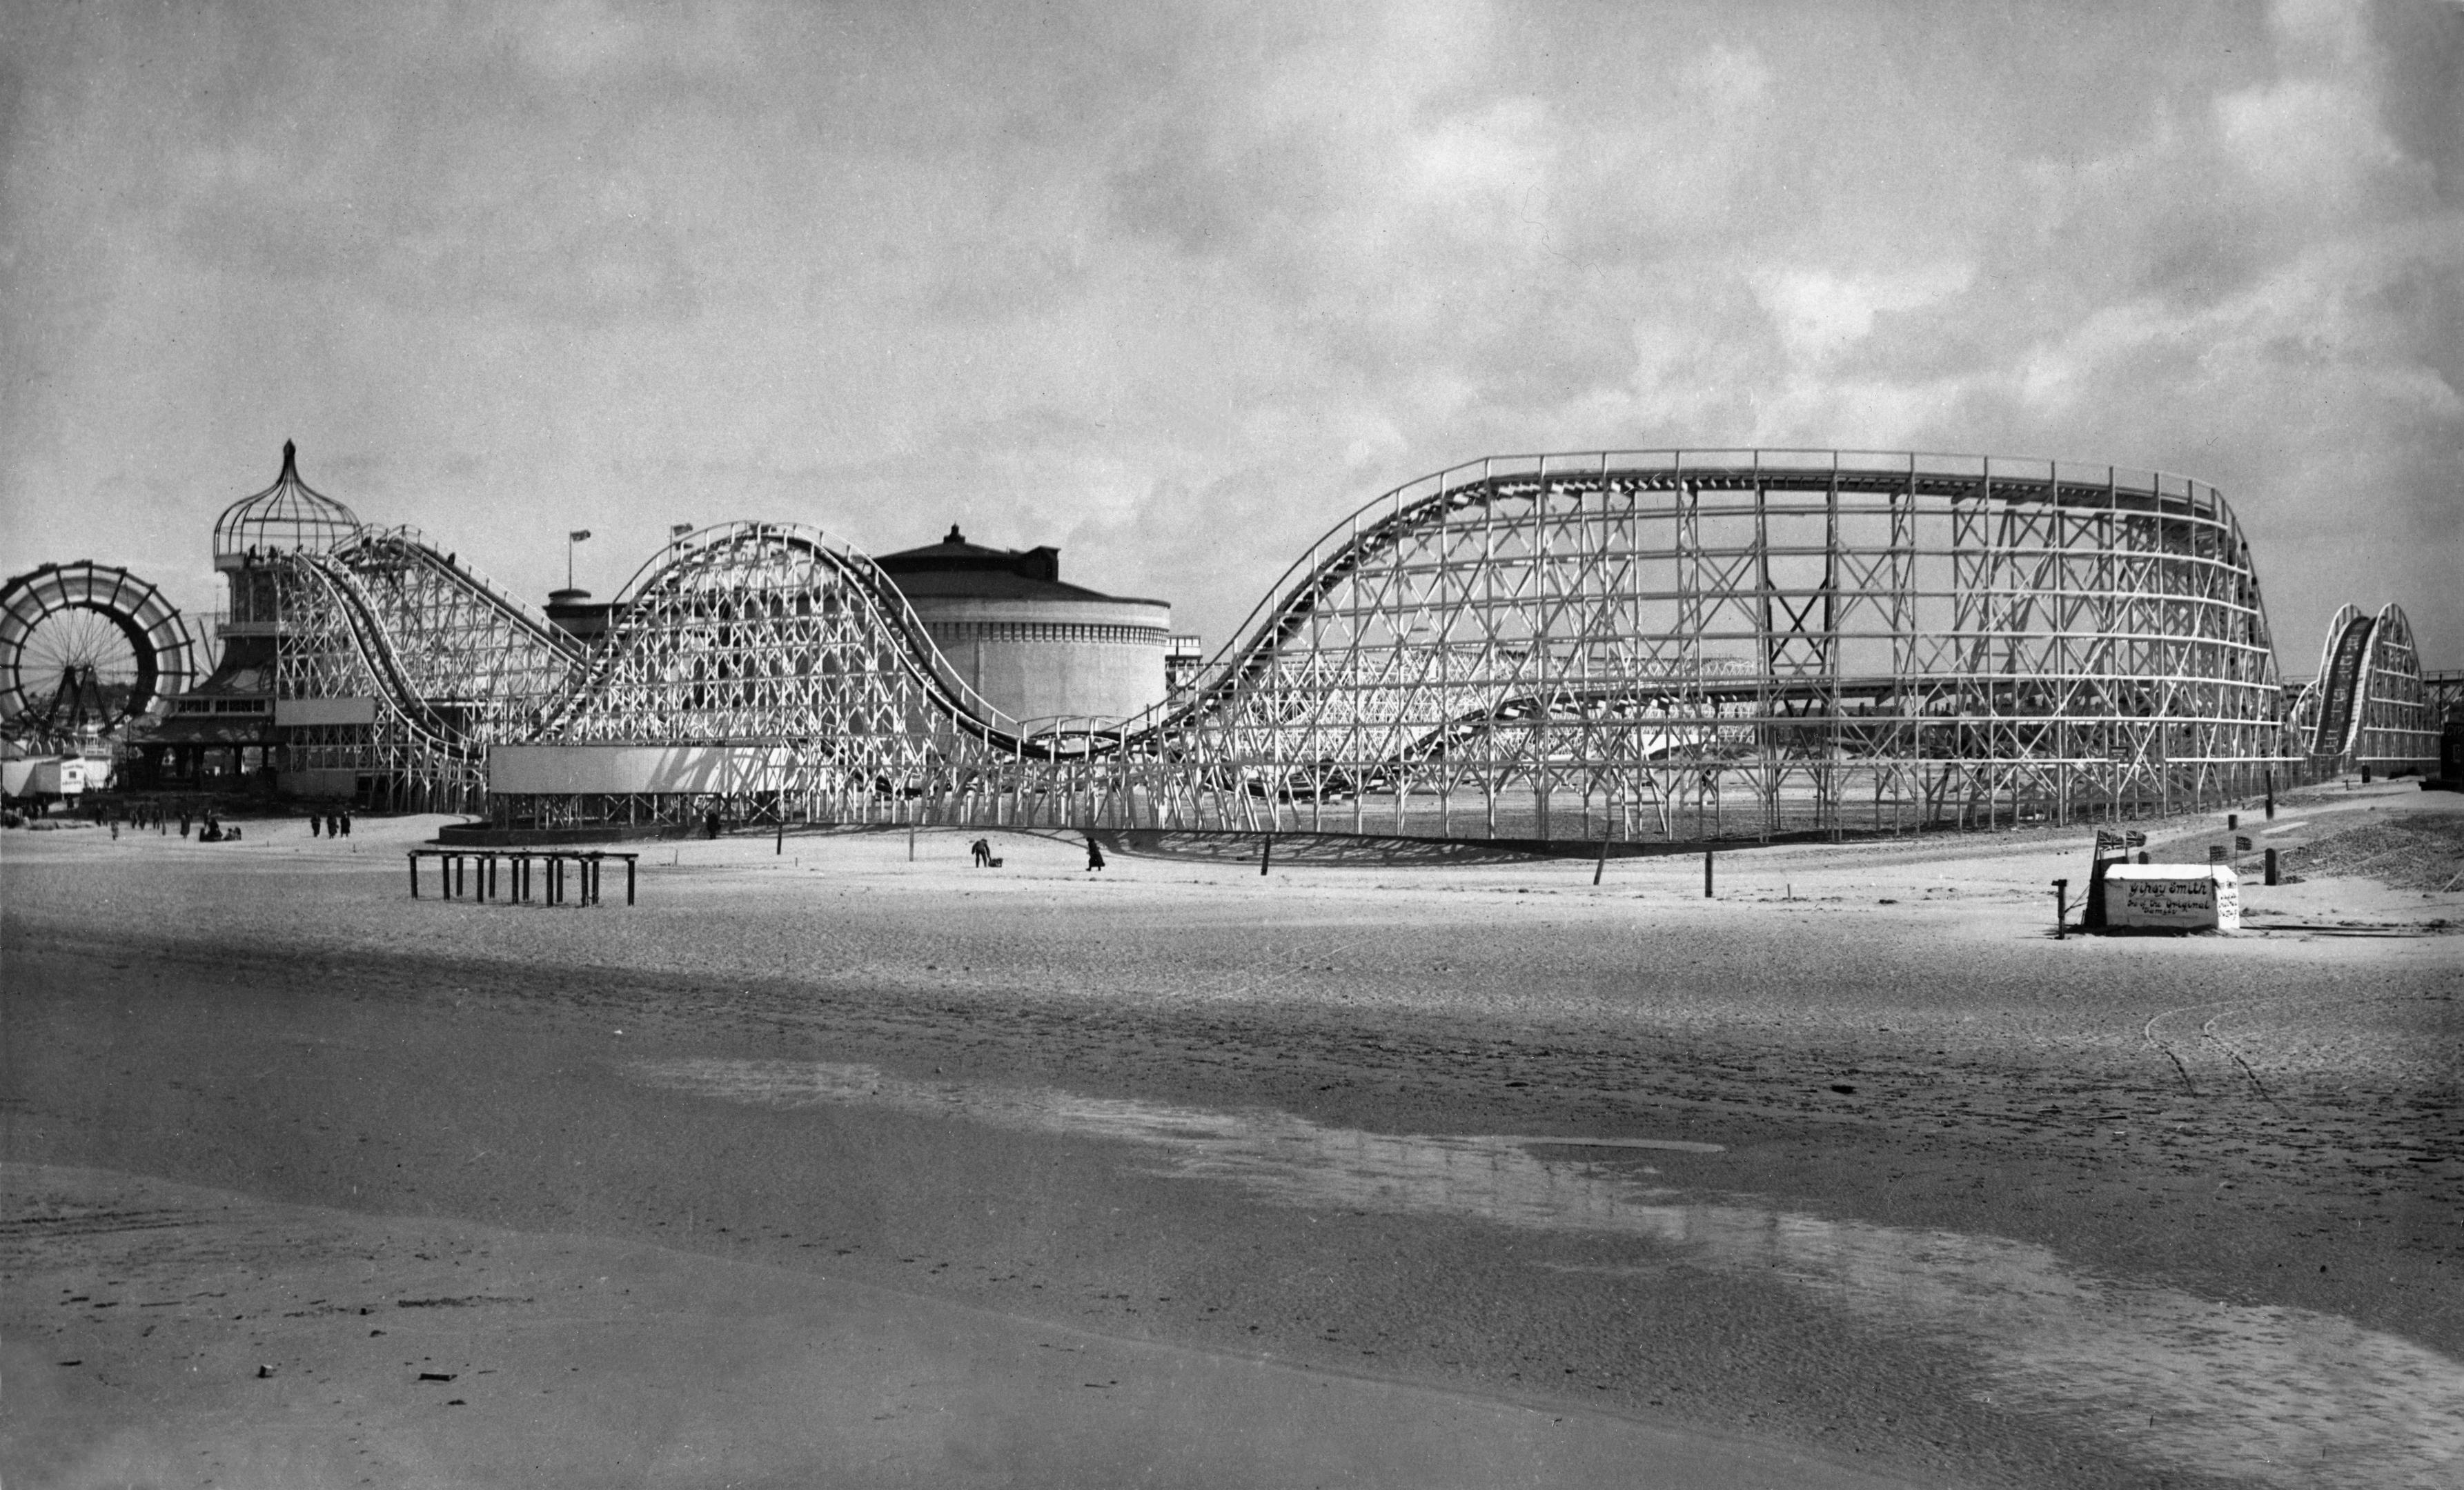 1923: The Big Dipper has been a Blackpool landmark for over a century